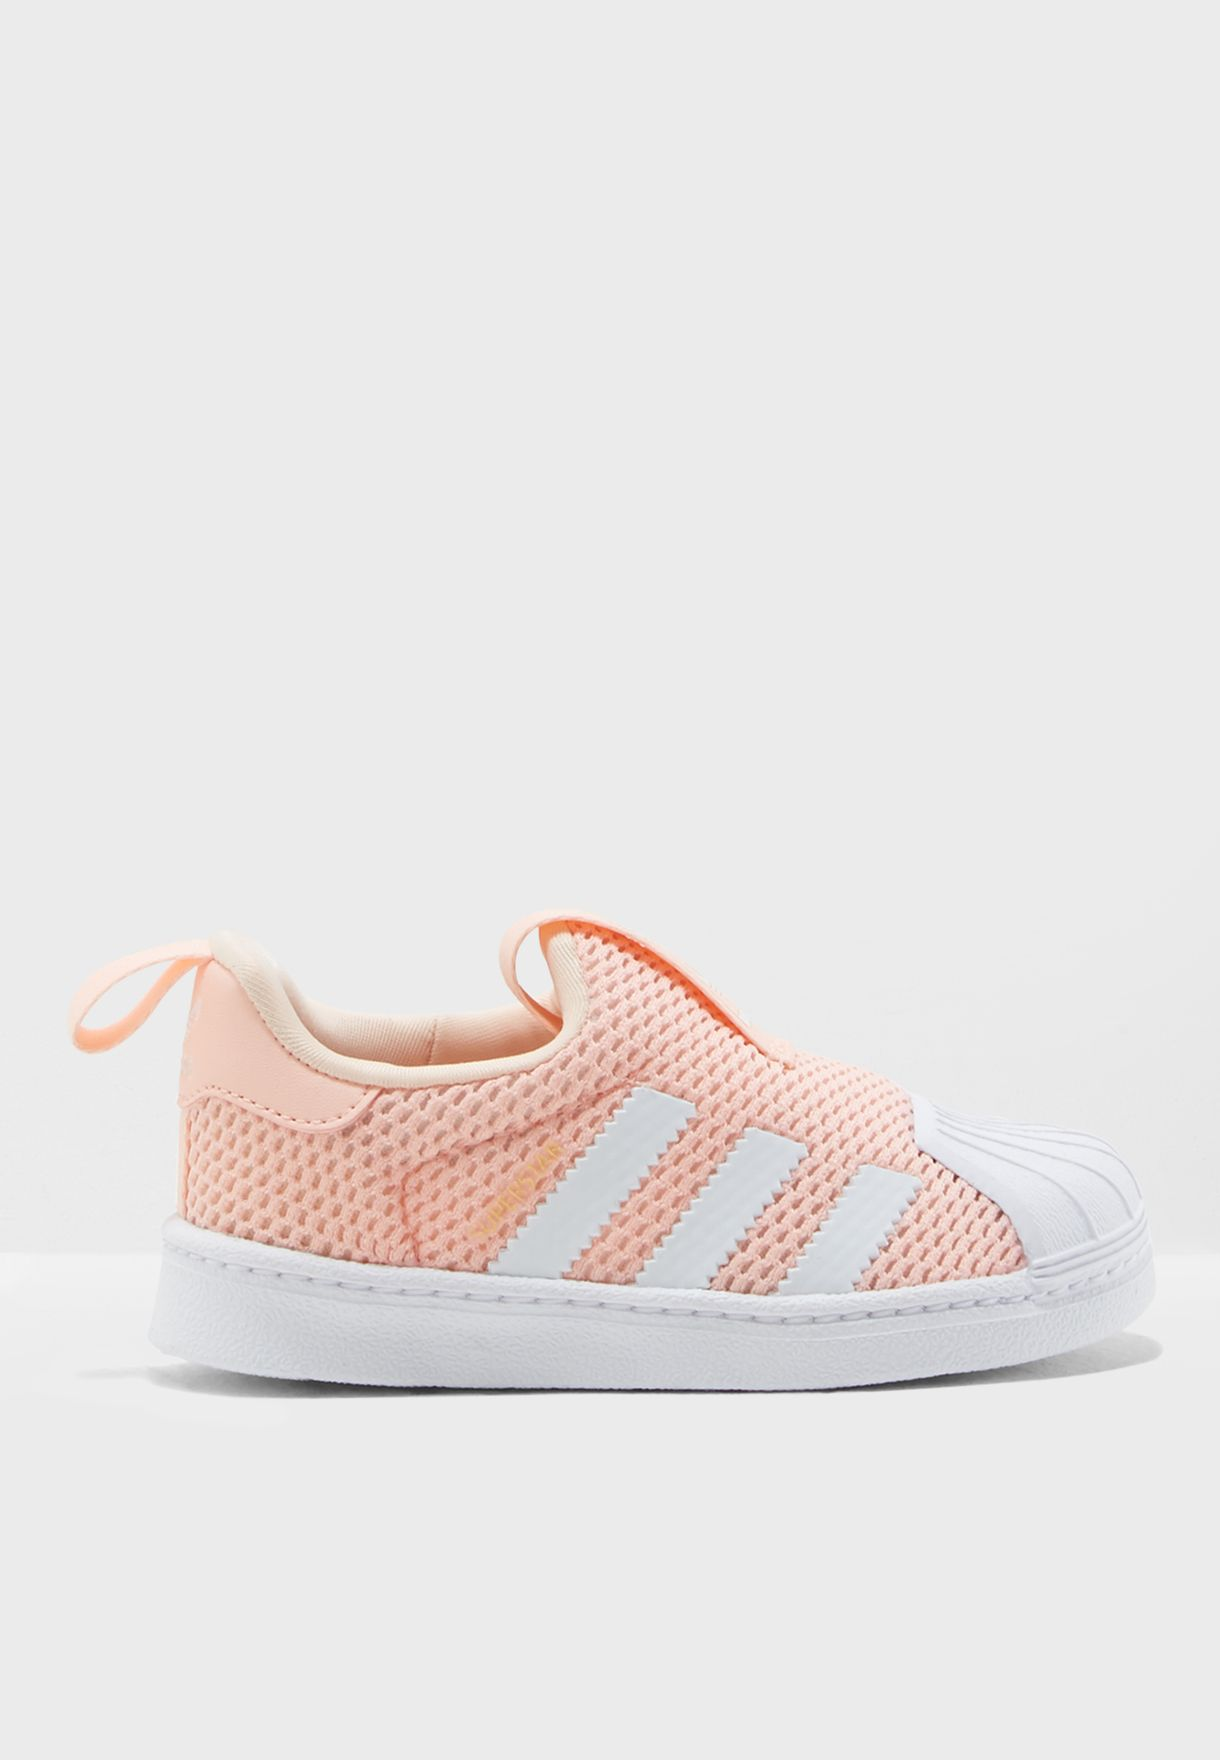 Shop adidas Originals pink Infant Superstar 360 B37253 for Kids in ... d481b55b2